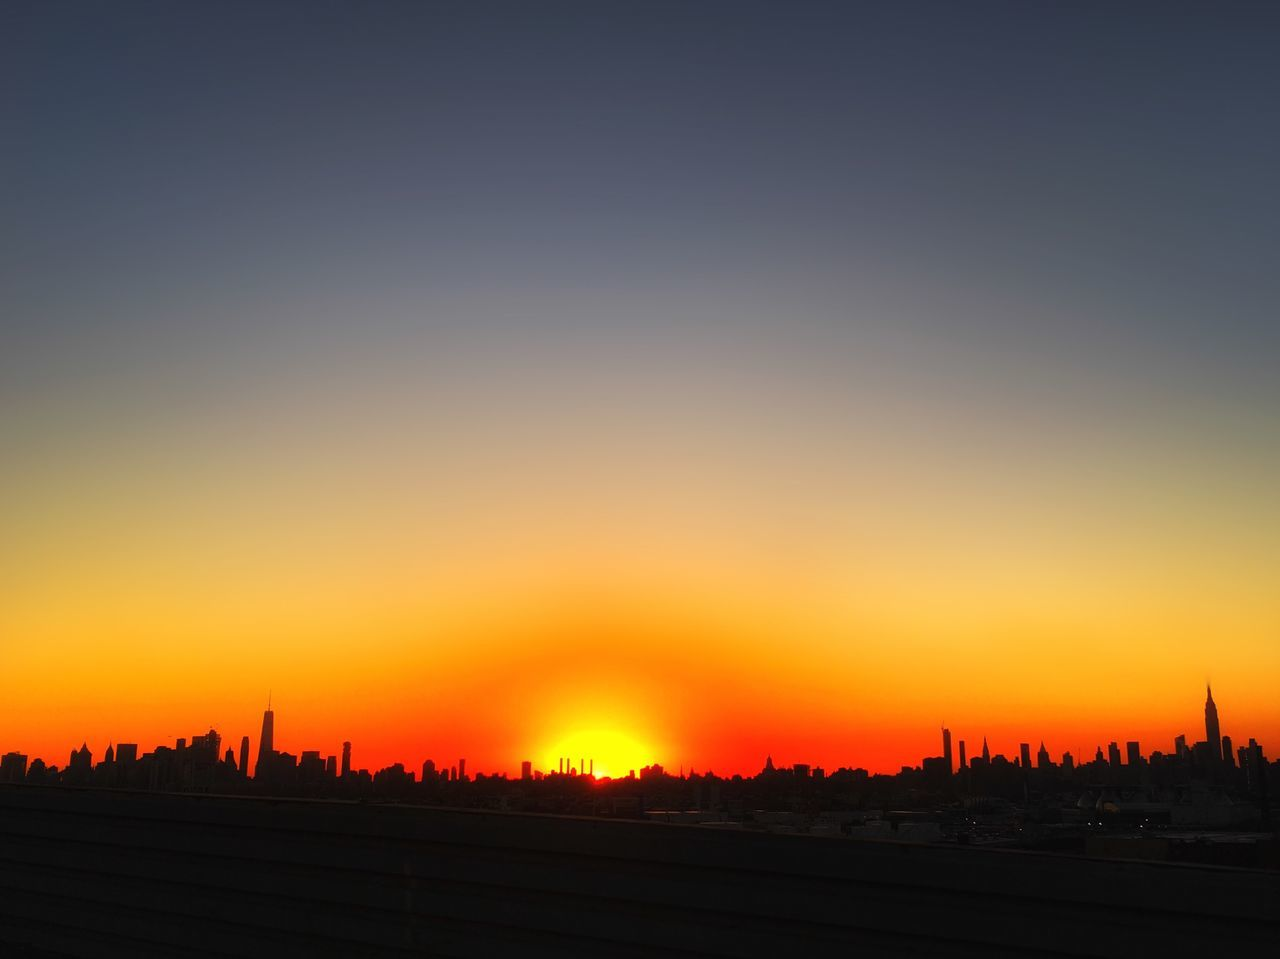 sunset, orange color, silhouette, building exterior, architecture, cityscape, skyscraper, city, built structure, travel destinations, nature, scenics, beauty in nature, outdoors, no people, sky, urban skyline, clear sky